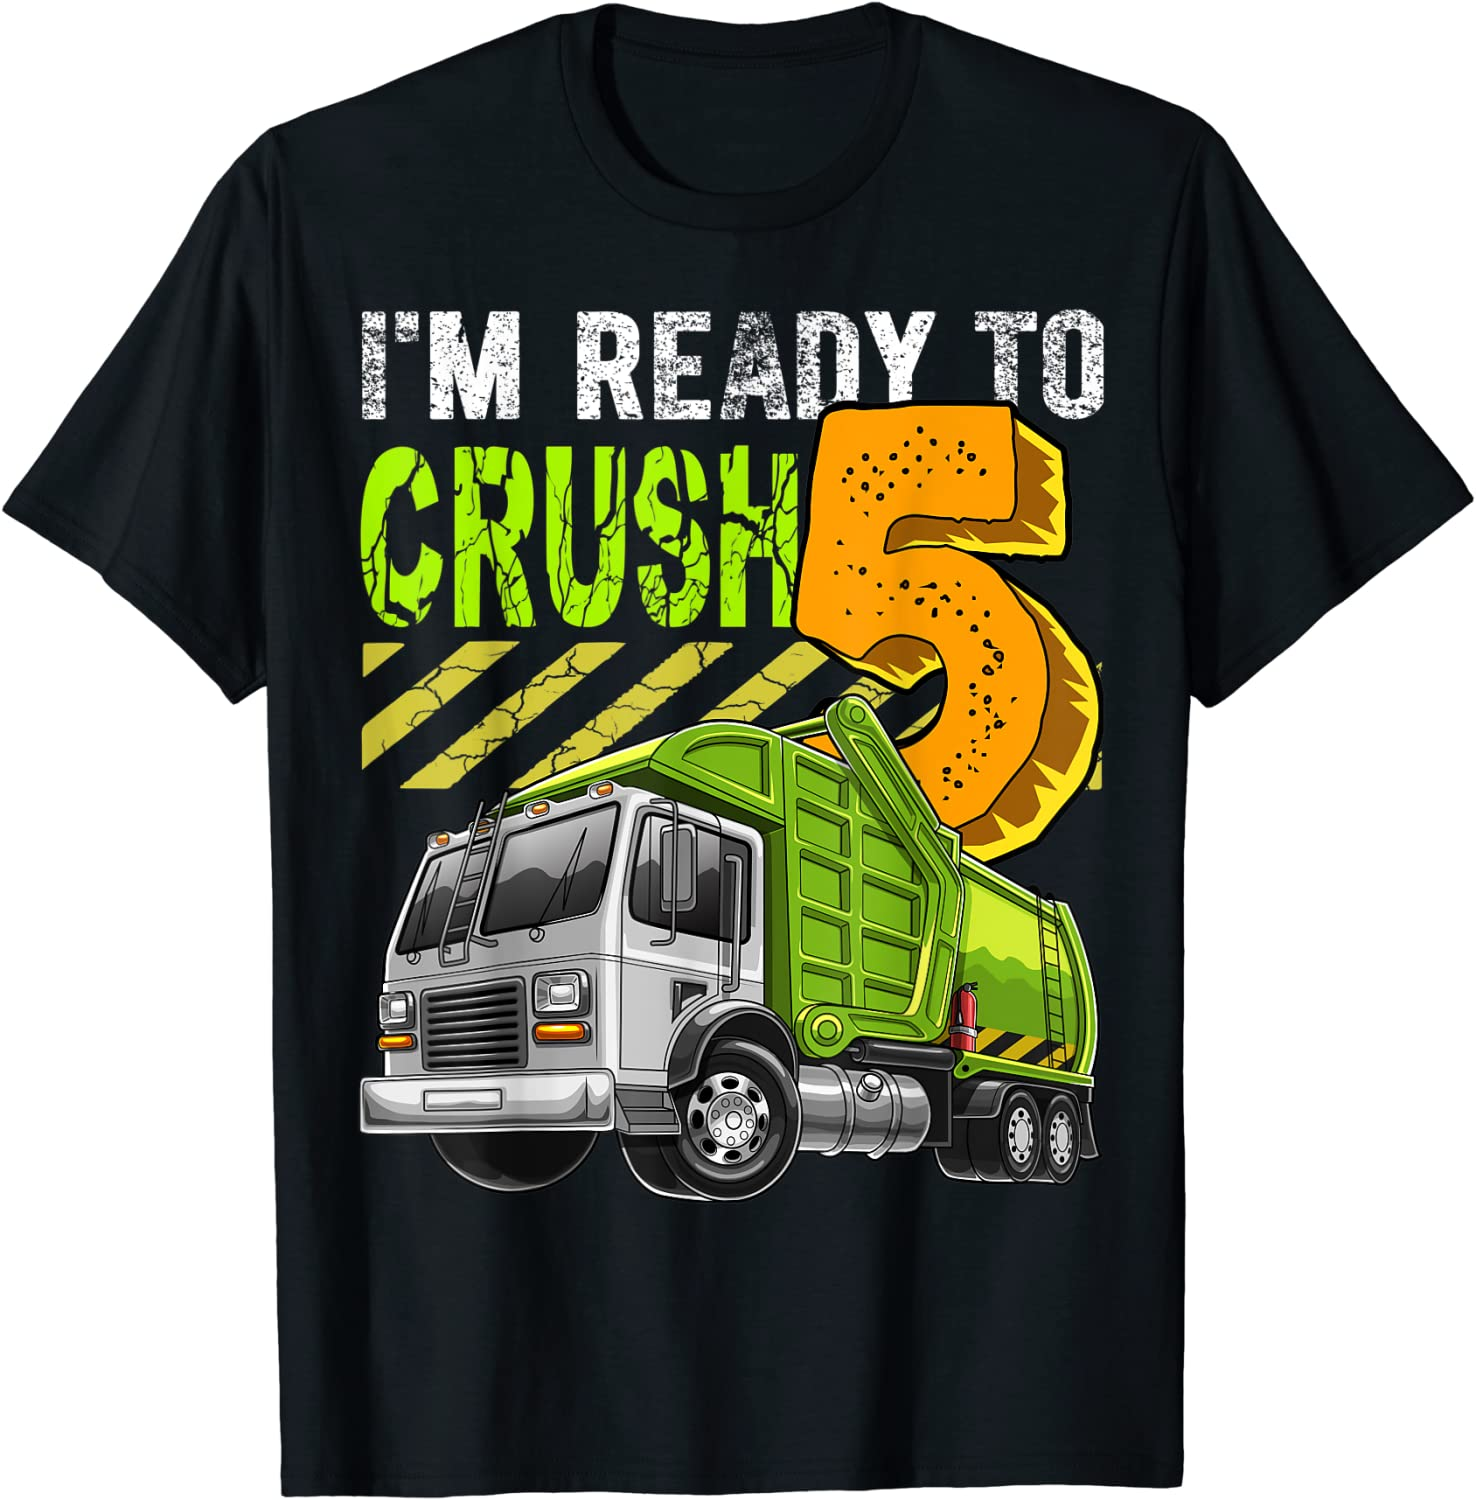 Garbage Truck 5th Birthday Party Kids T-Sh Gift for Super Special SALE held Boy Max 63% OFF